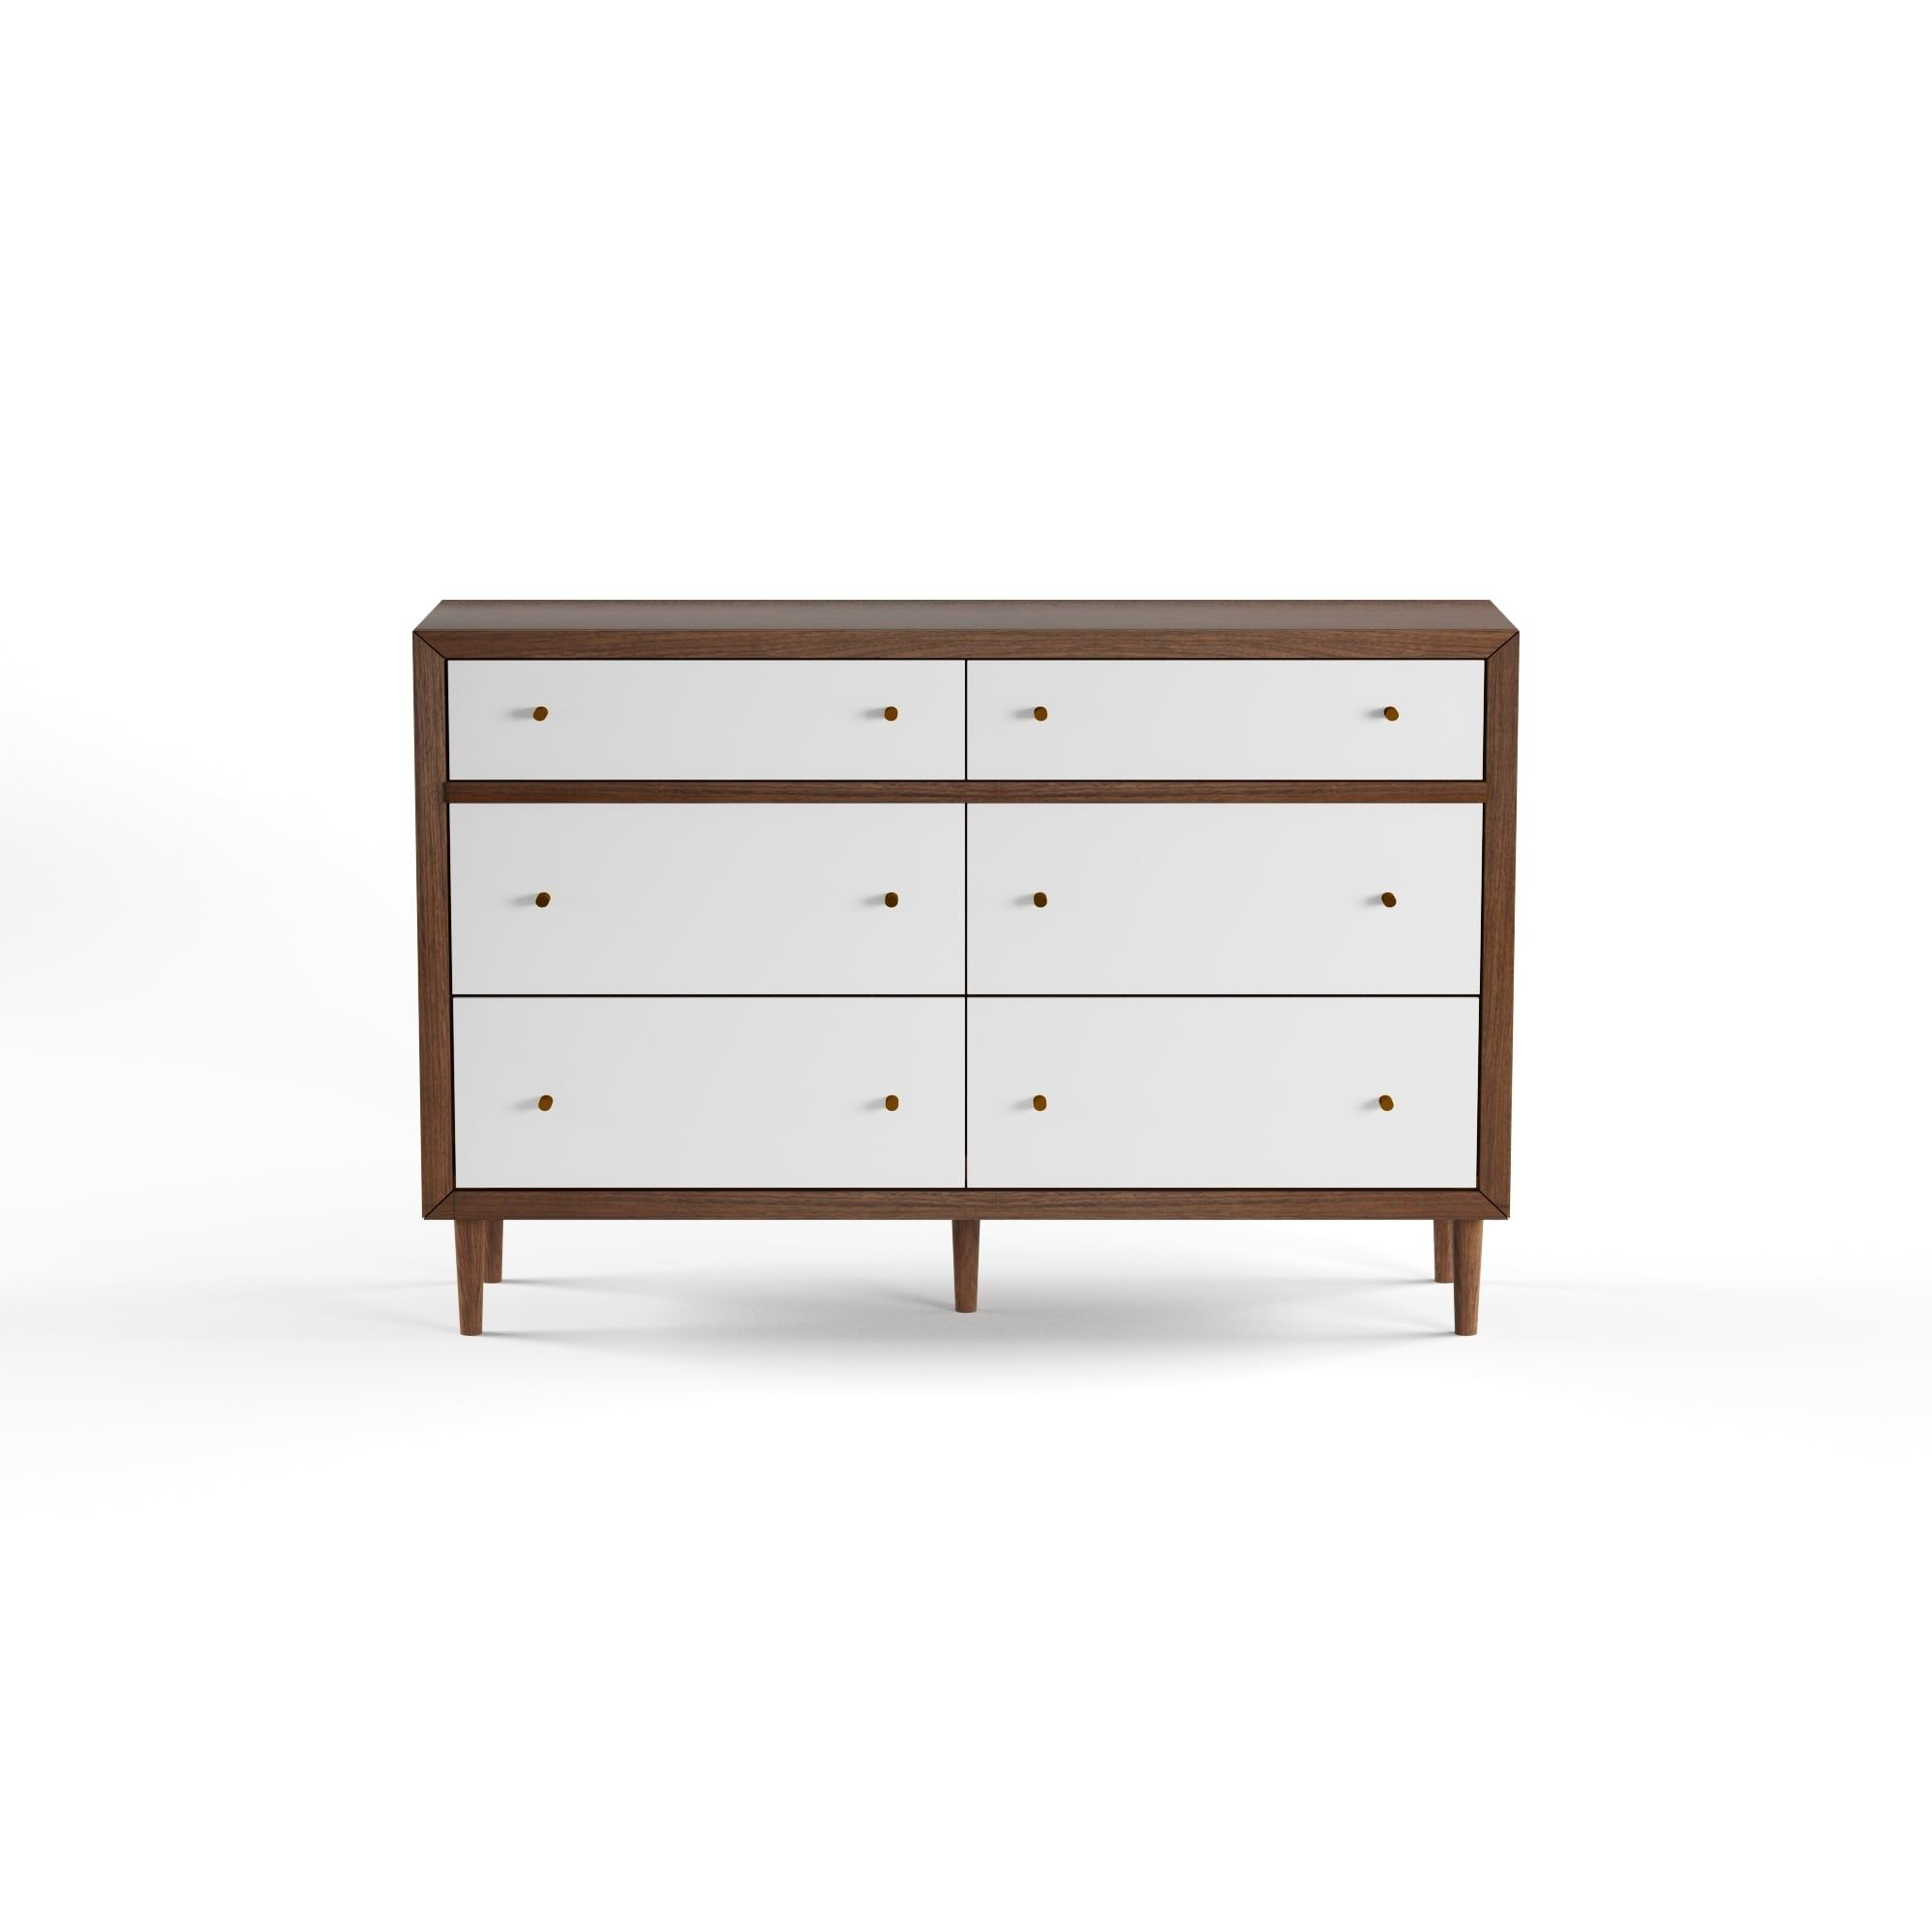 Overstock Com Online Shopping Bedding Furniture Electronics Jewelry Clothing More Toddler Furniture Dressers For Sale Furniture [ 2000 x 2000 Pixel ]